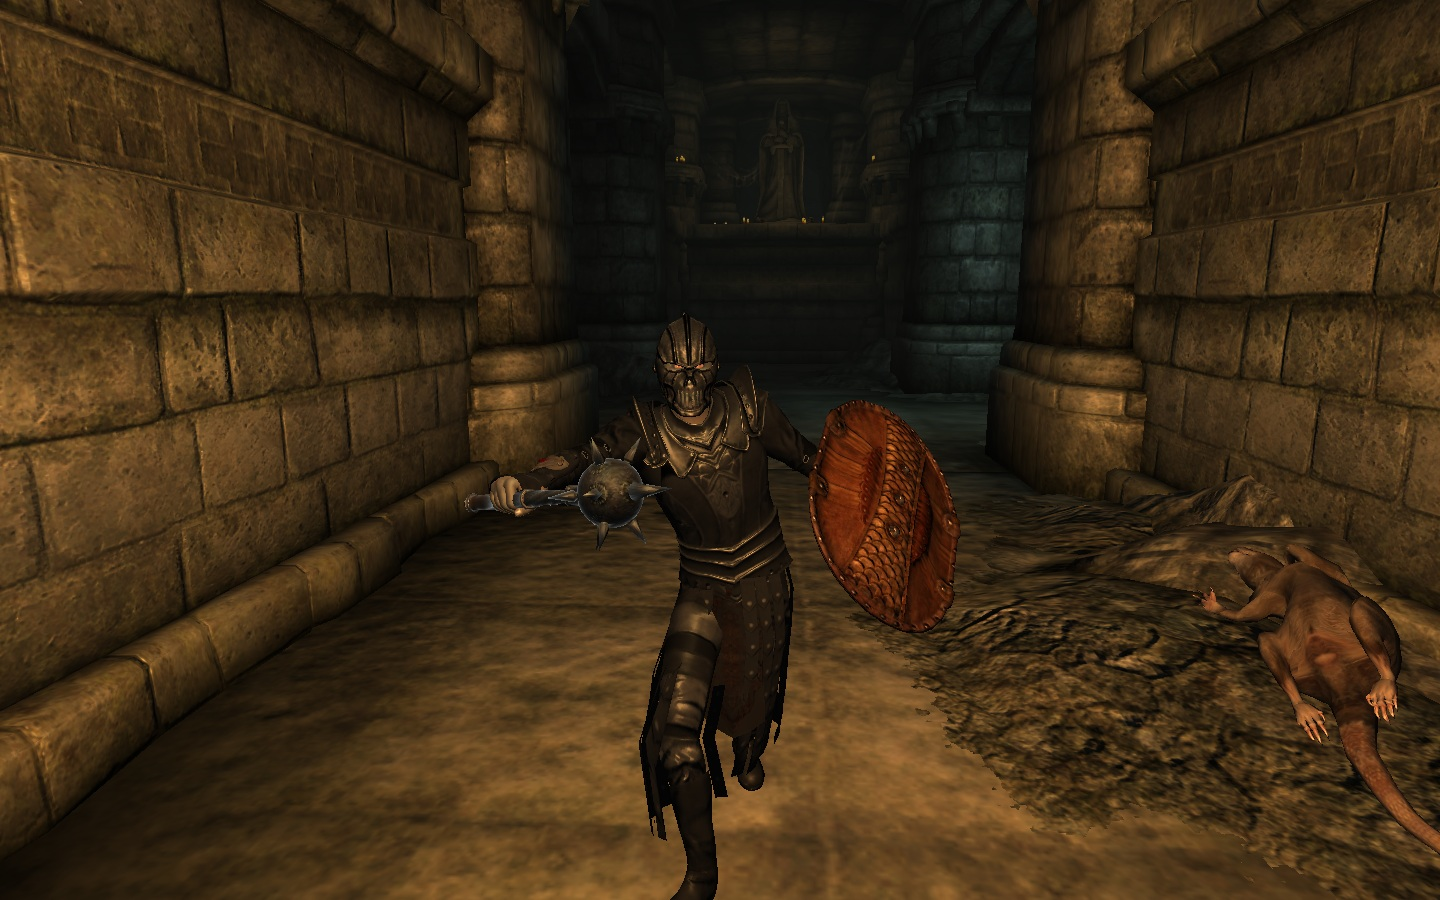 underworld armor for vampires from mods at oblivion nexus mods and community oblivion game manual xbox 360 oblivion game manual xbox 360 pdf